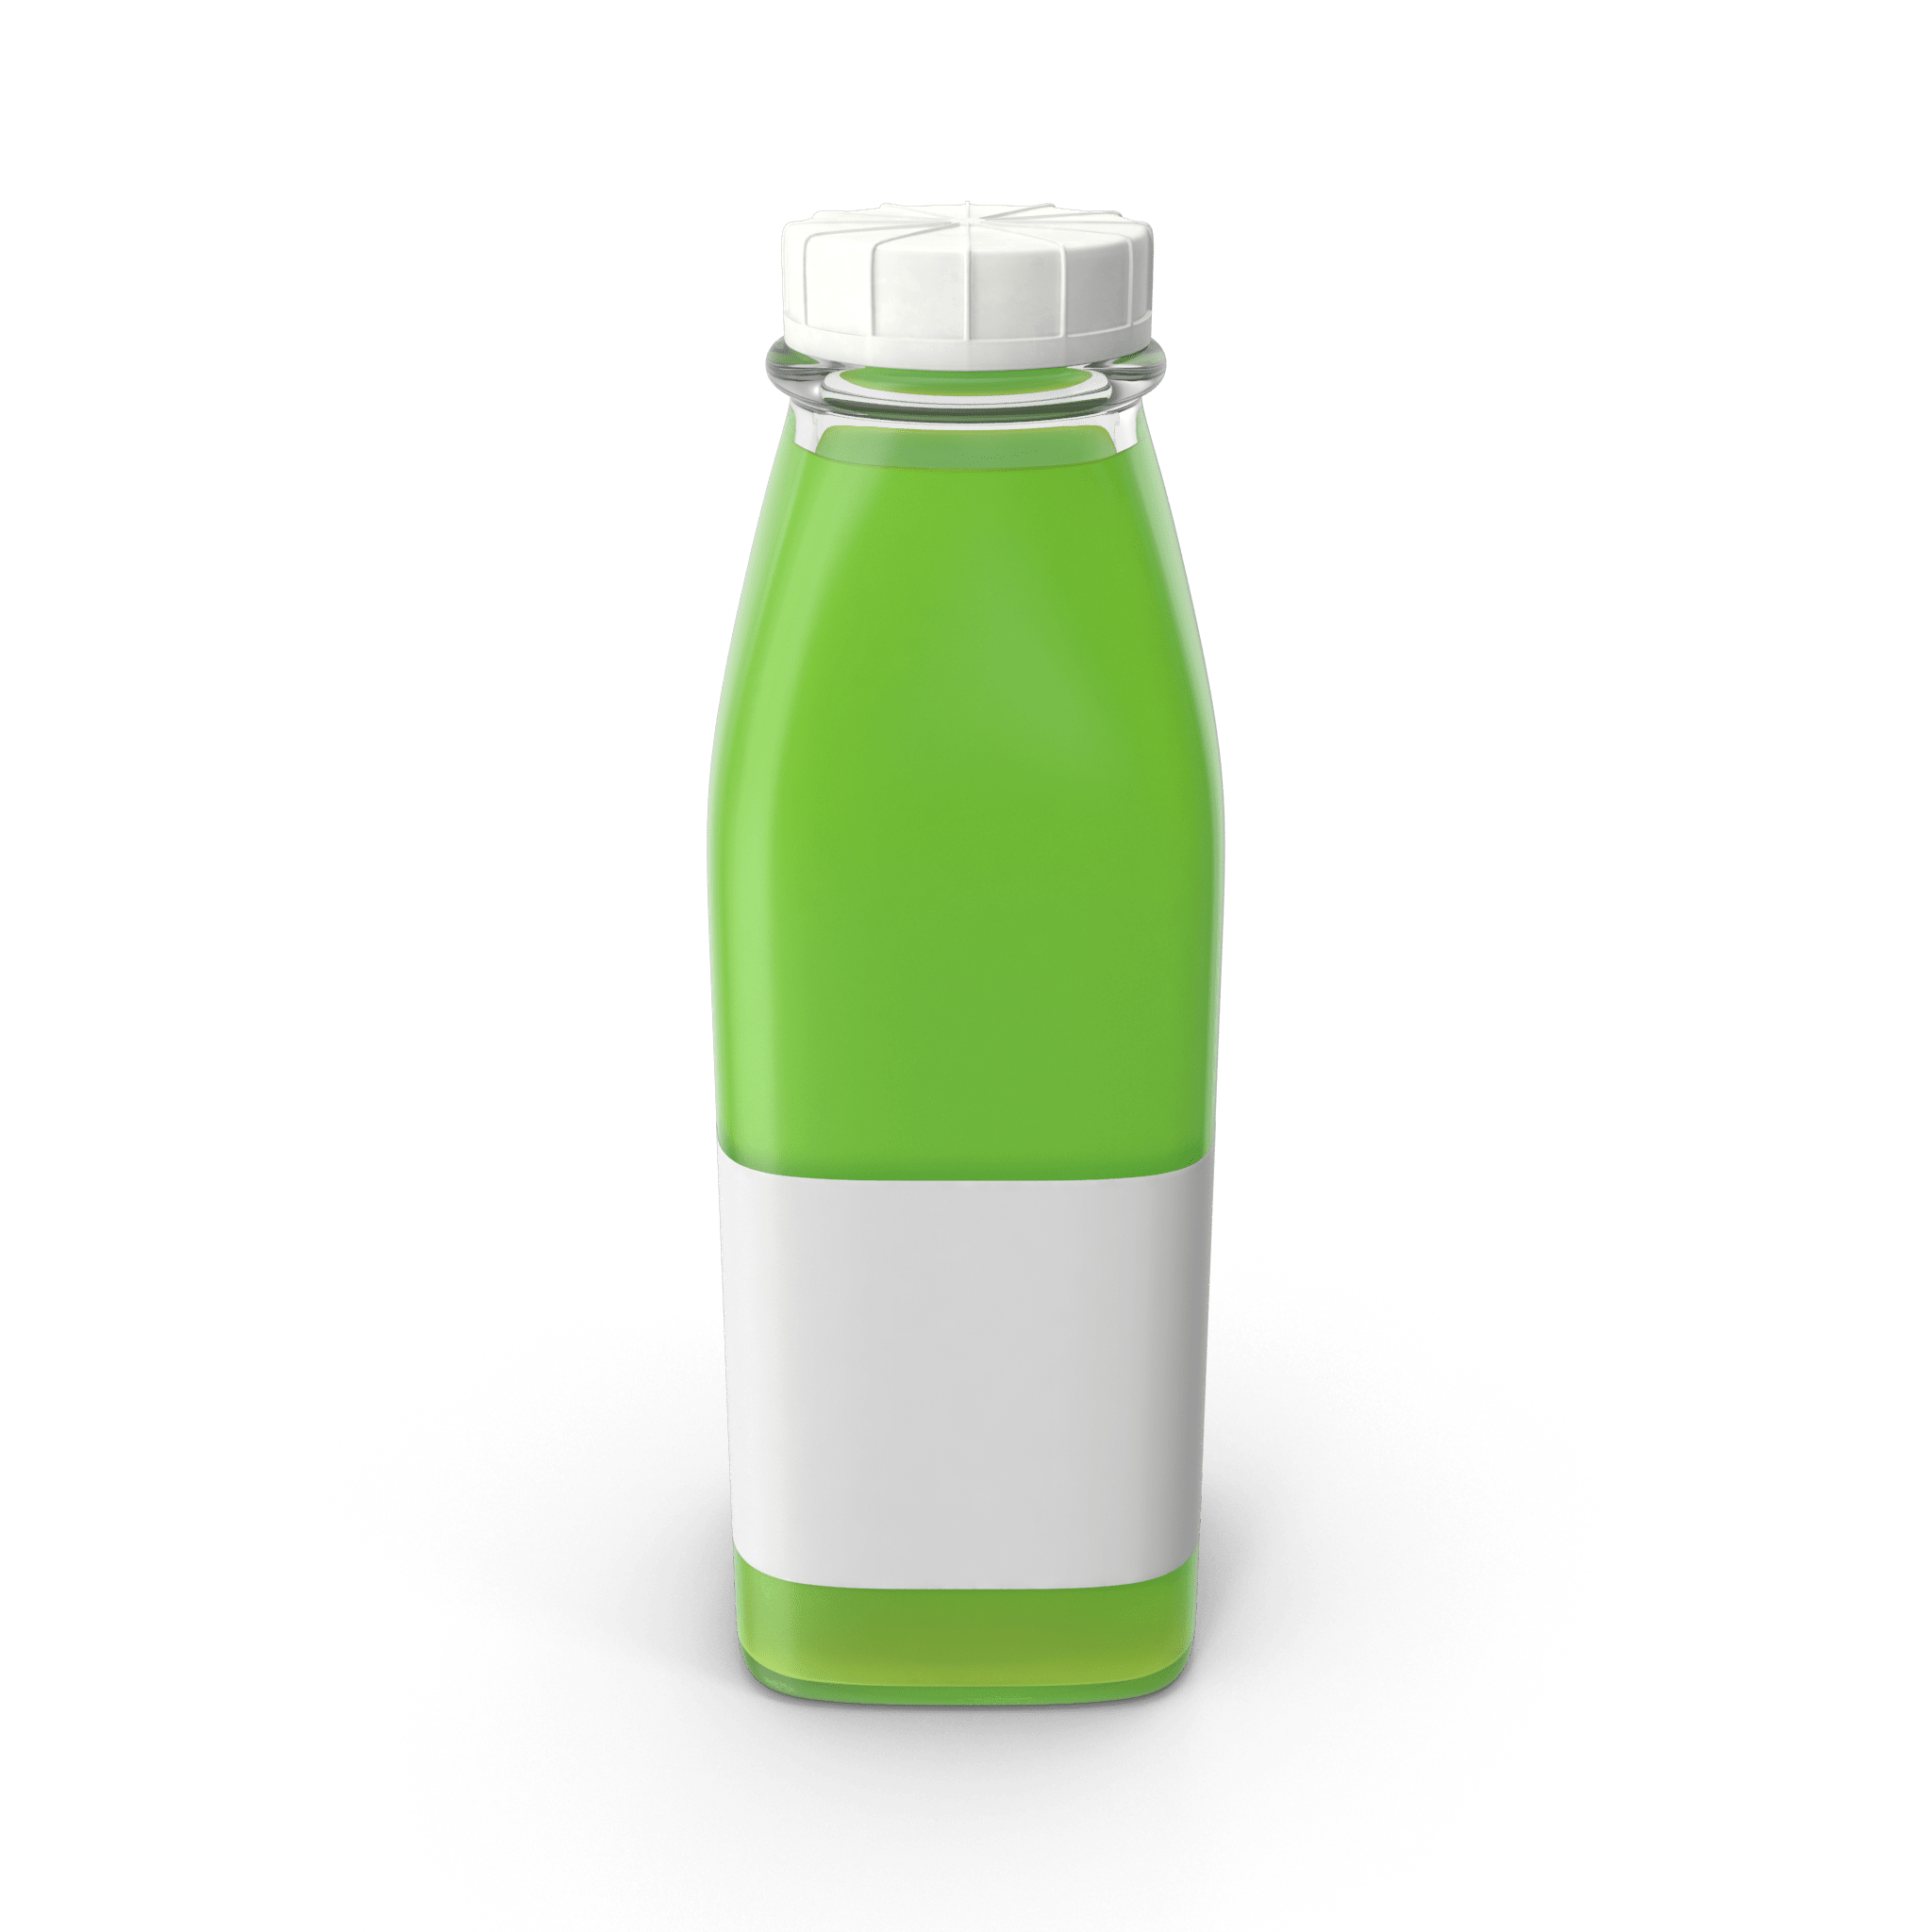 Juice Bottle Mockup Green.G01.2k-min